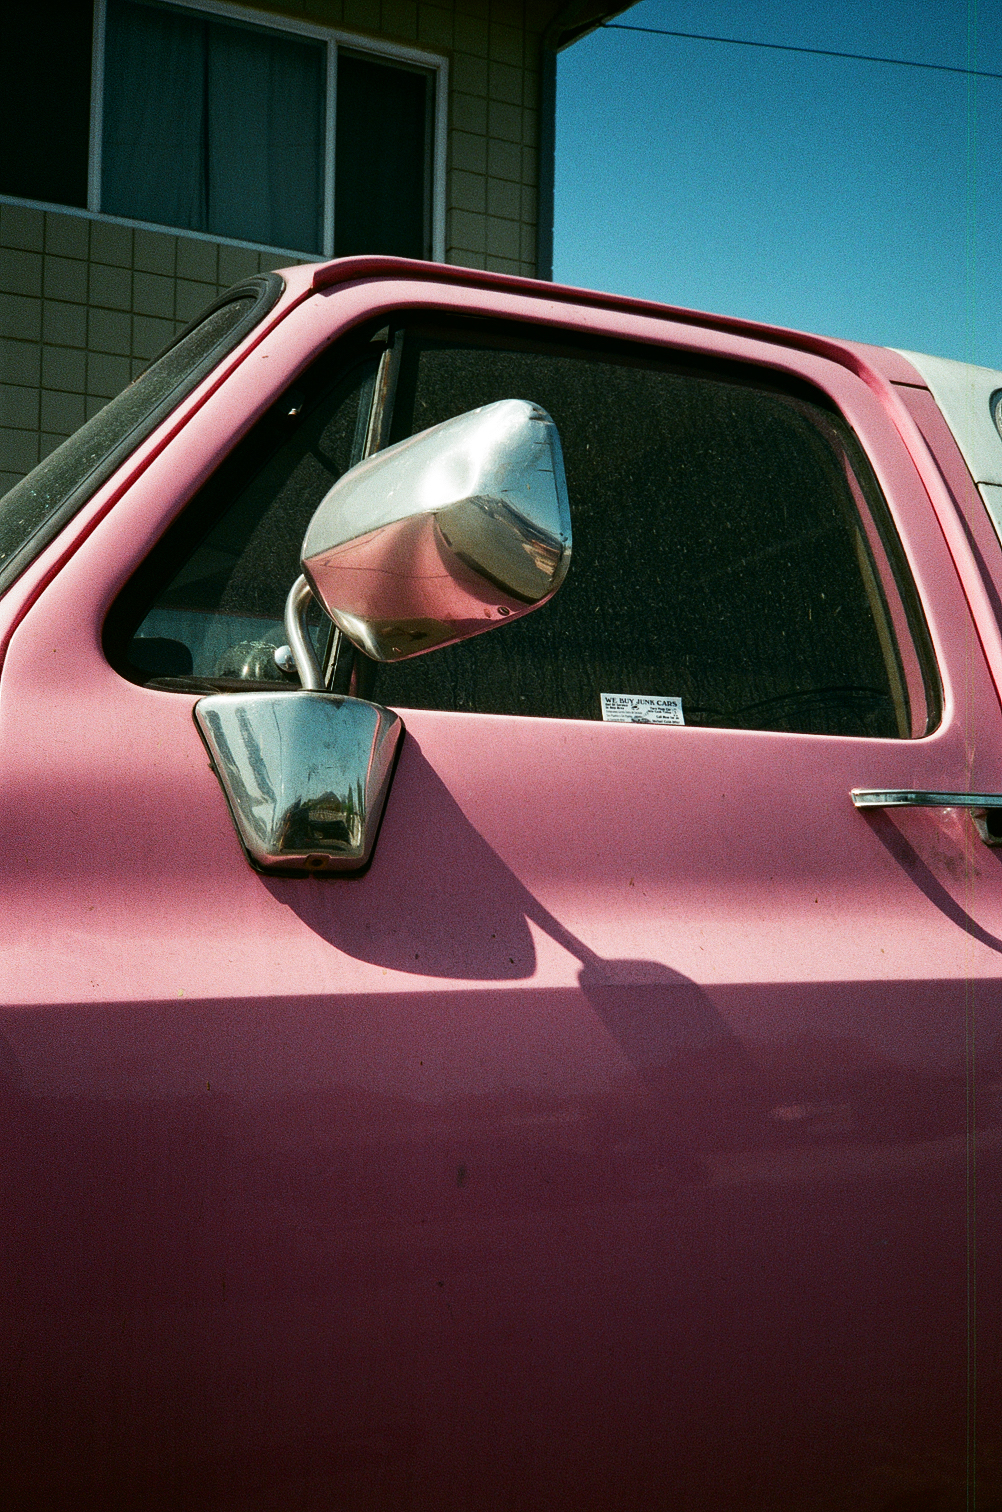 Untitled (Pink Bronco), 2018, Ramsey Cheng